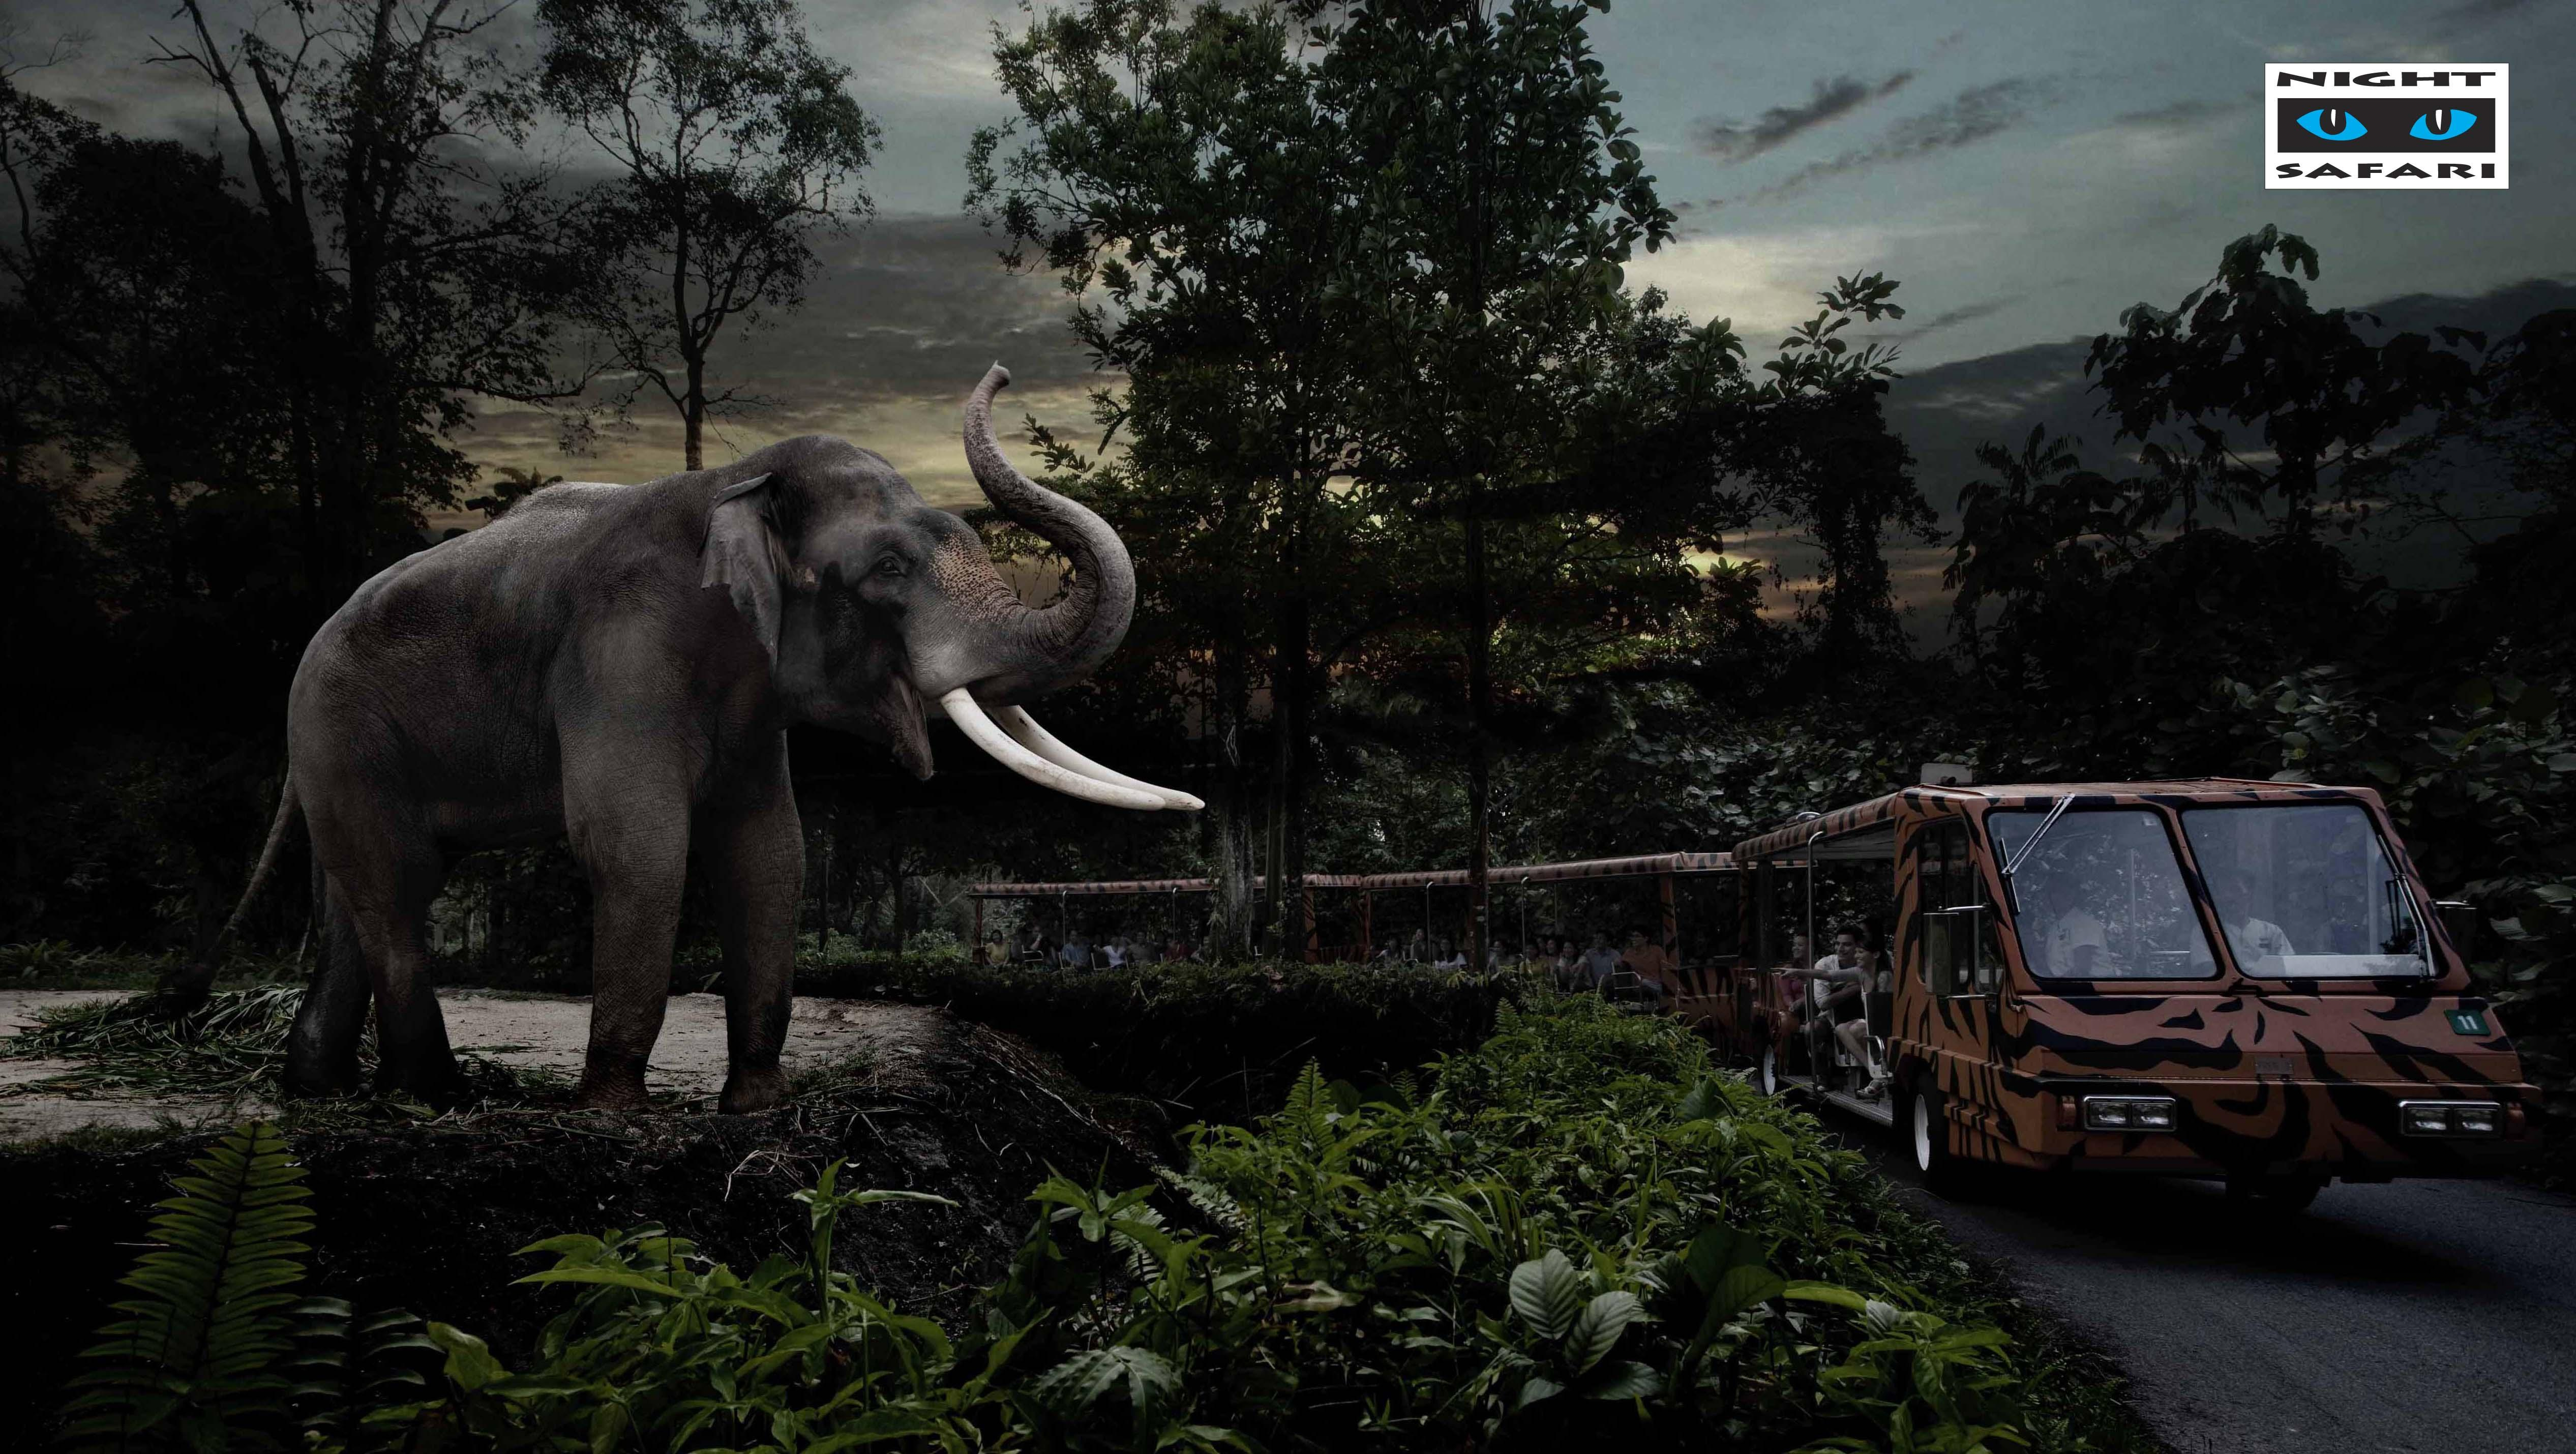 Magnificent bull elephant, Chawang, salutes visitors as they enjoy a tram ride in Singapore's Night Safari. Chawang, the park's largest resident, is one of five Asian elephants that calls this attraction home.